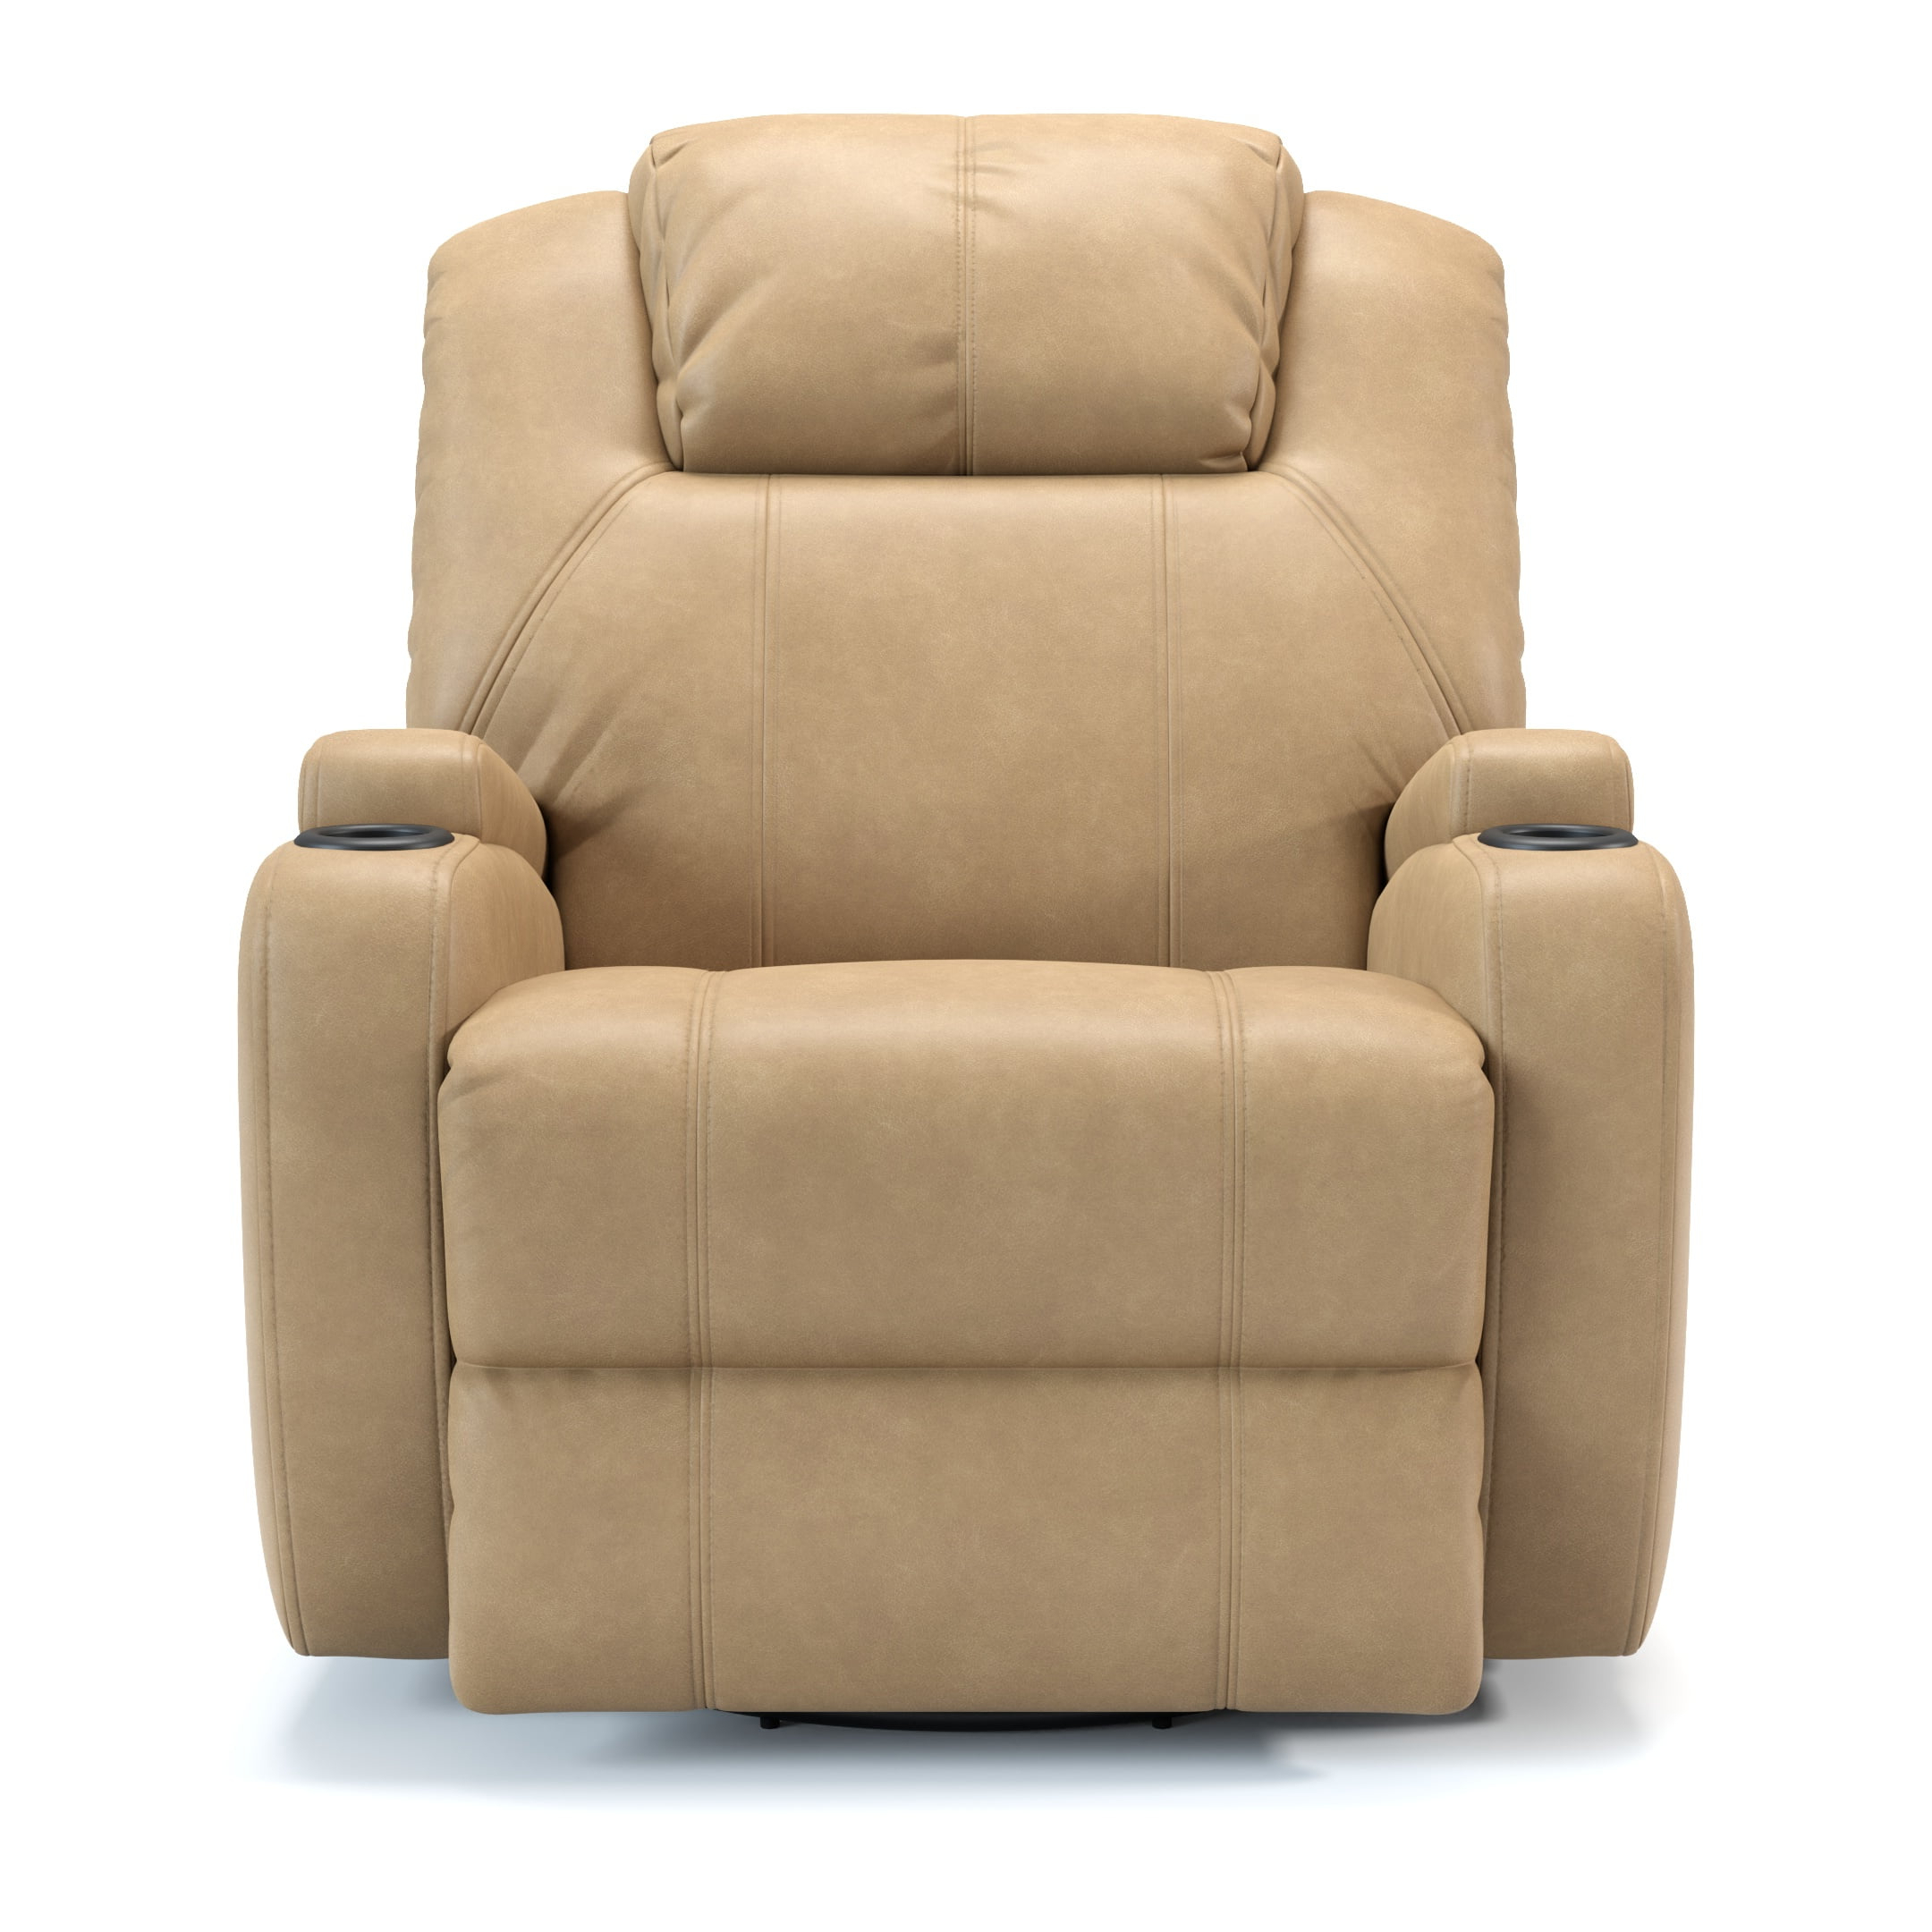 Widely Used Colton Manual Reclining Sofas With Poltrona Do Papai Reclinável Colton Em Couro Sintético Ou (View 14 of 15)